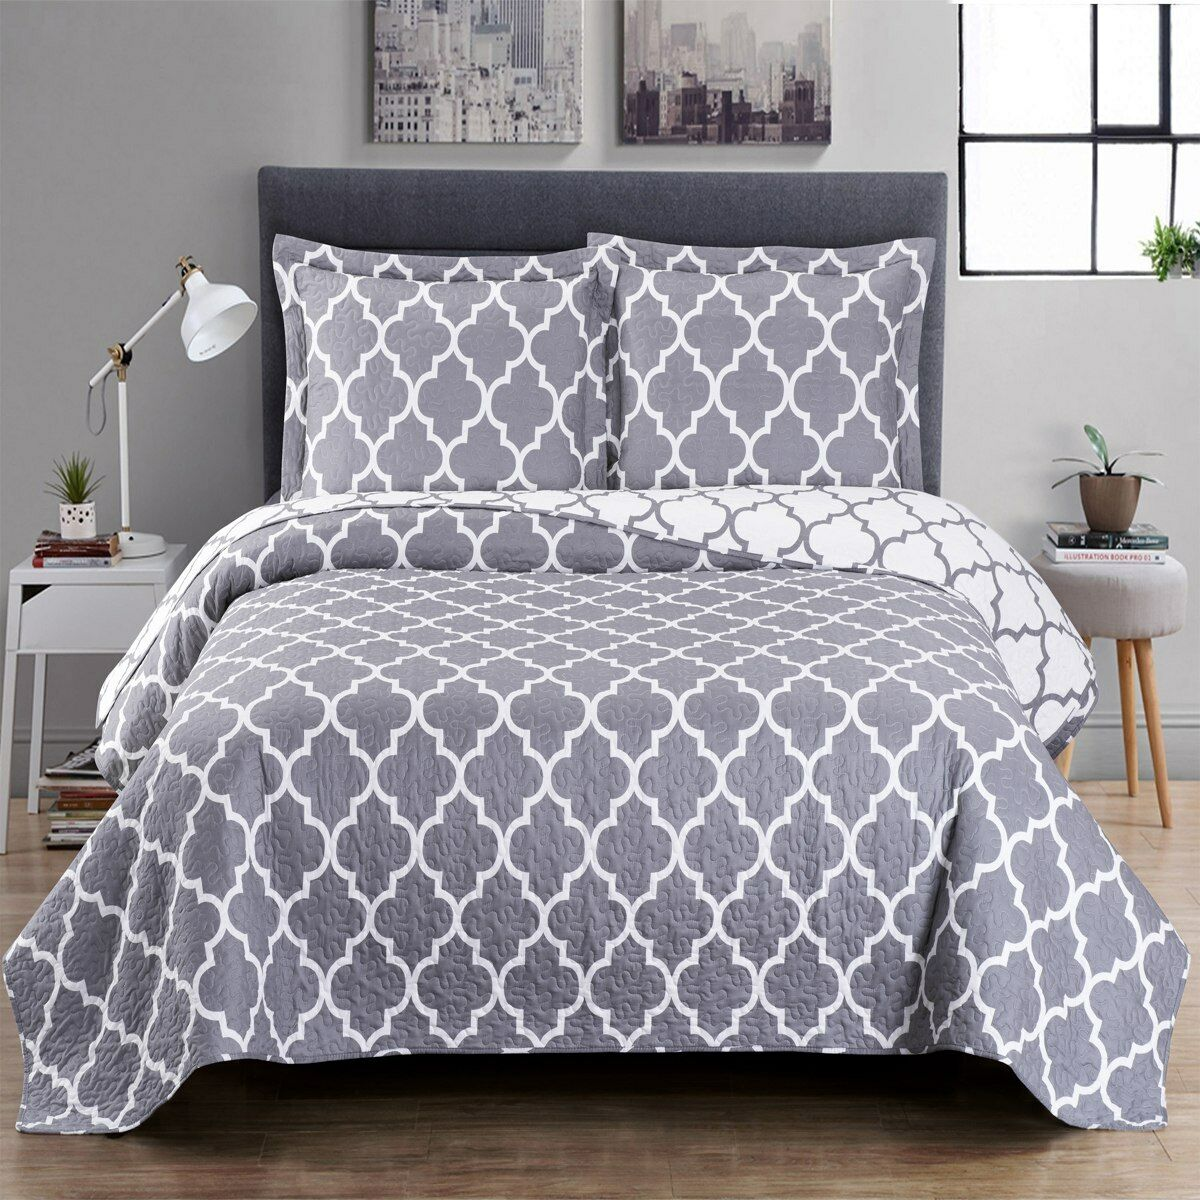 Elegance Coverlet Set with a a a Beautiful MGoldccan-inspirot print, OverGrößed Quilt cc5a56